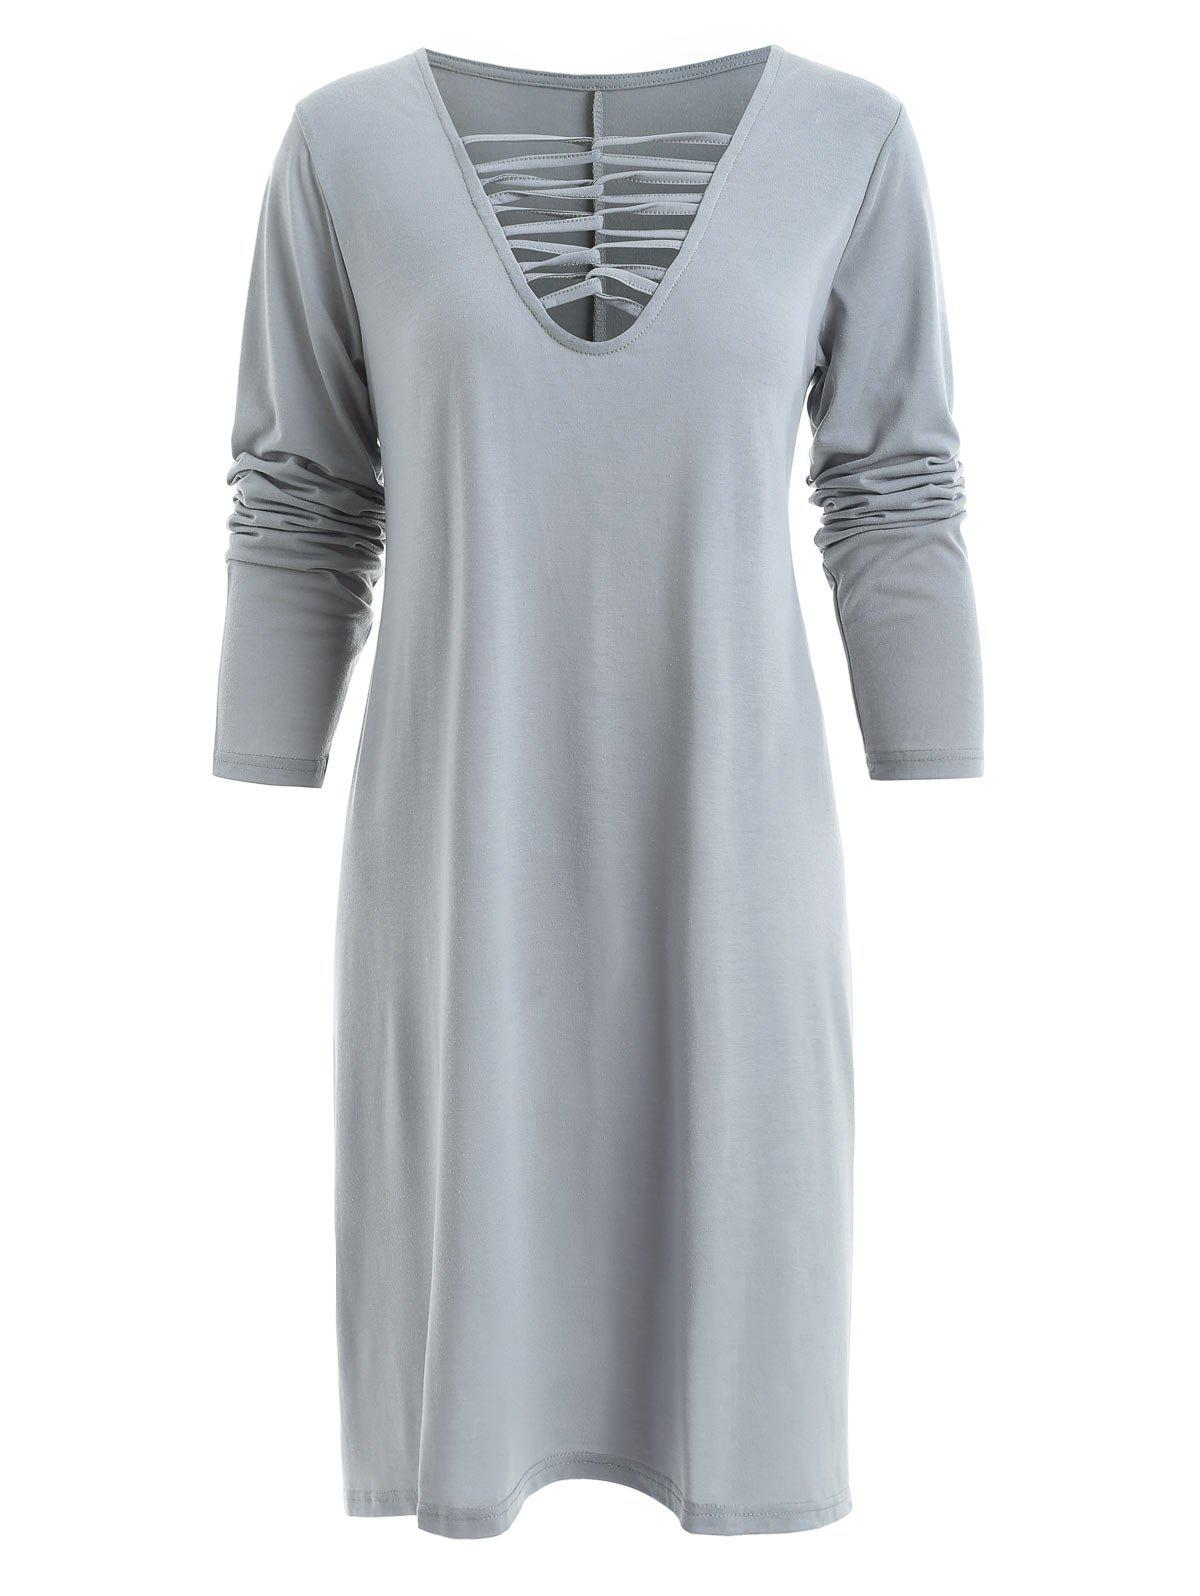 Unique Criss Cross Front Full Sleeve Dress